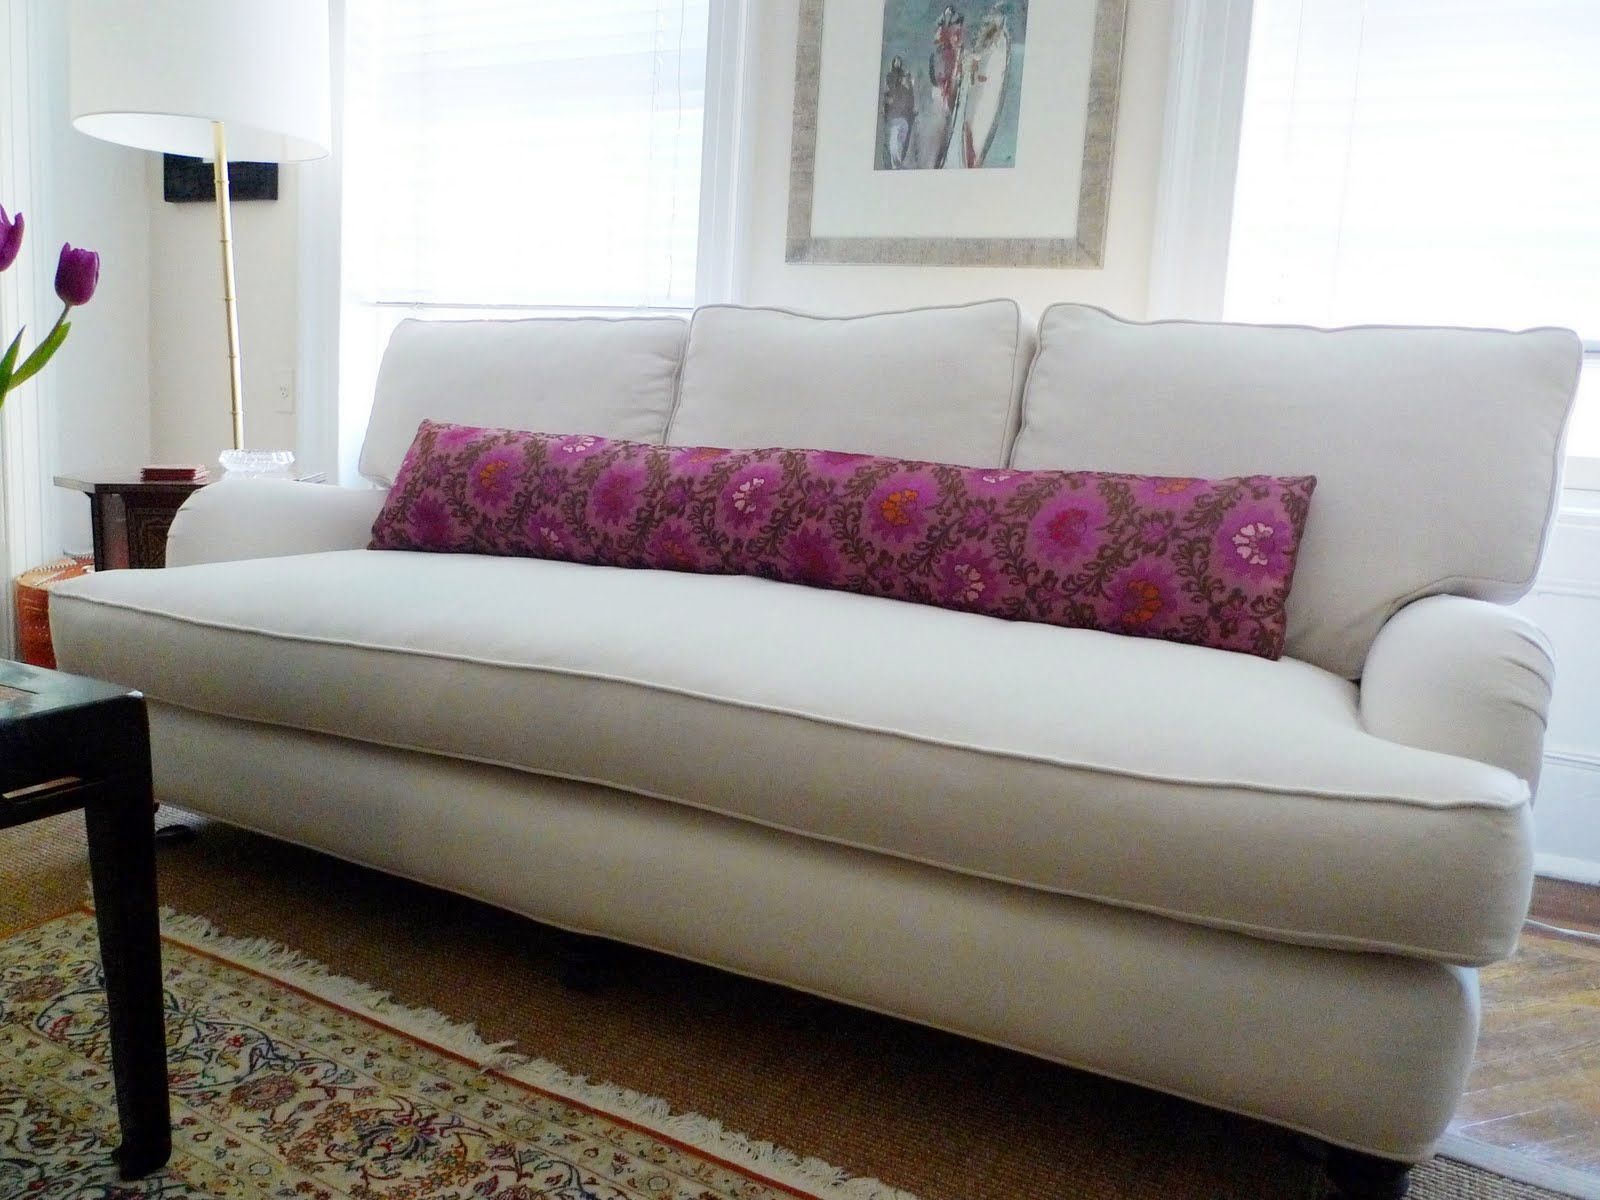 How Many Throw Pillows On A Sectional Couch : Long couch pillow Great Room Pinterest